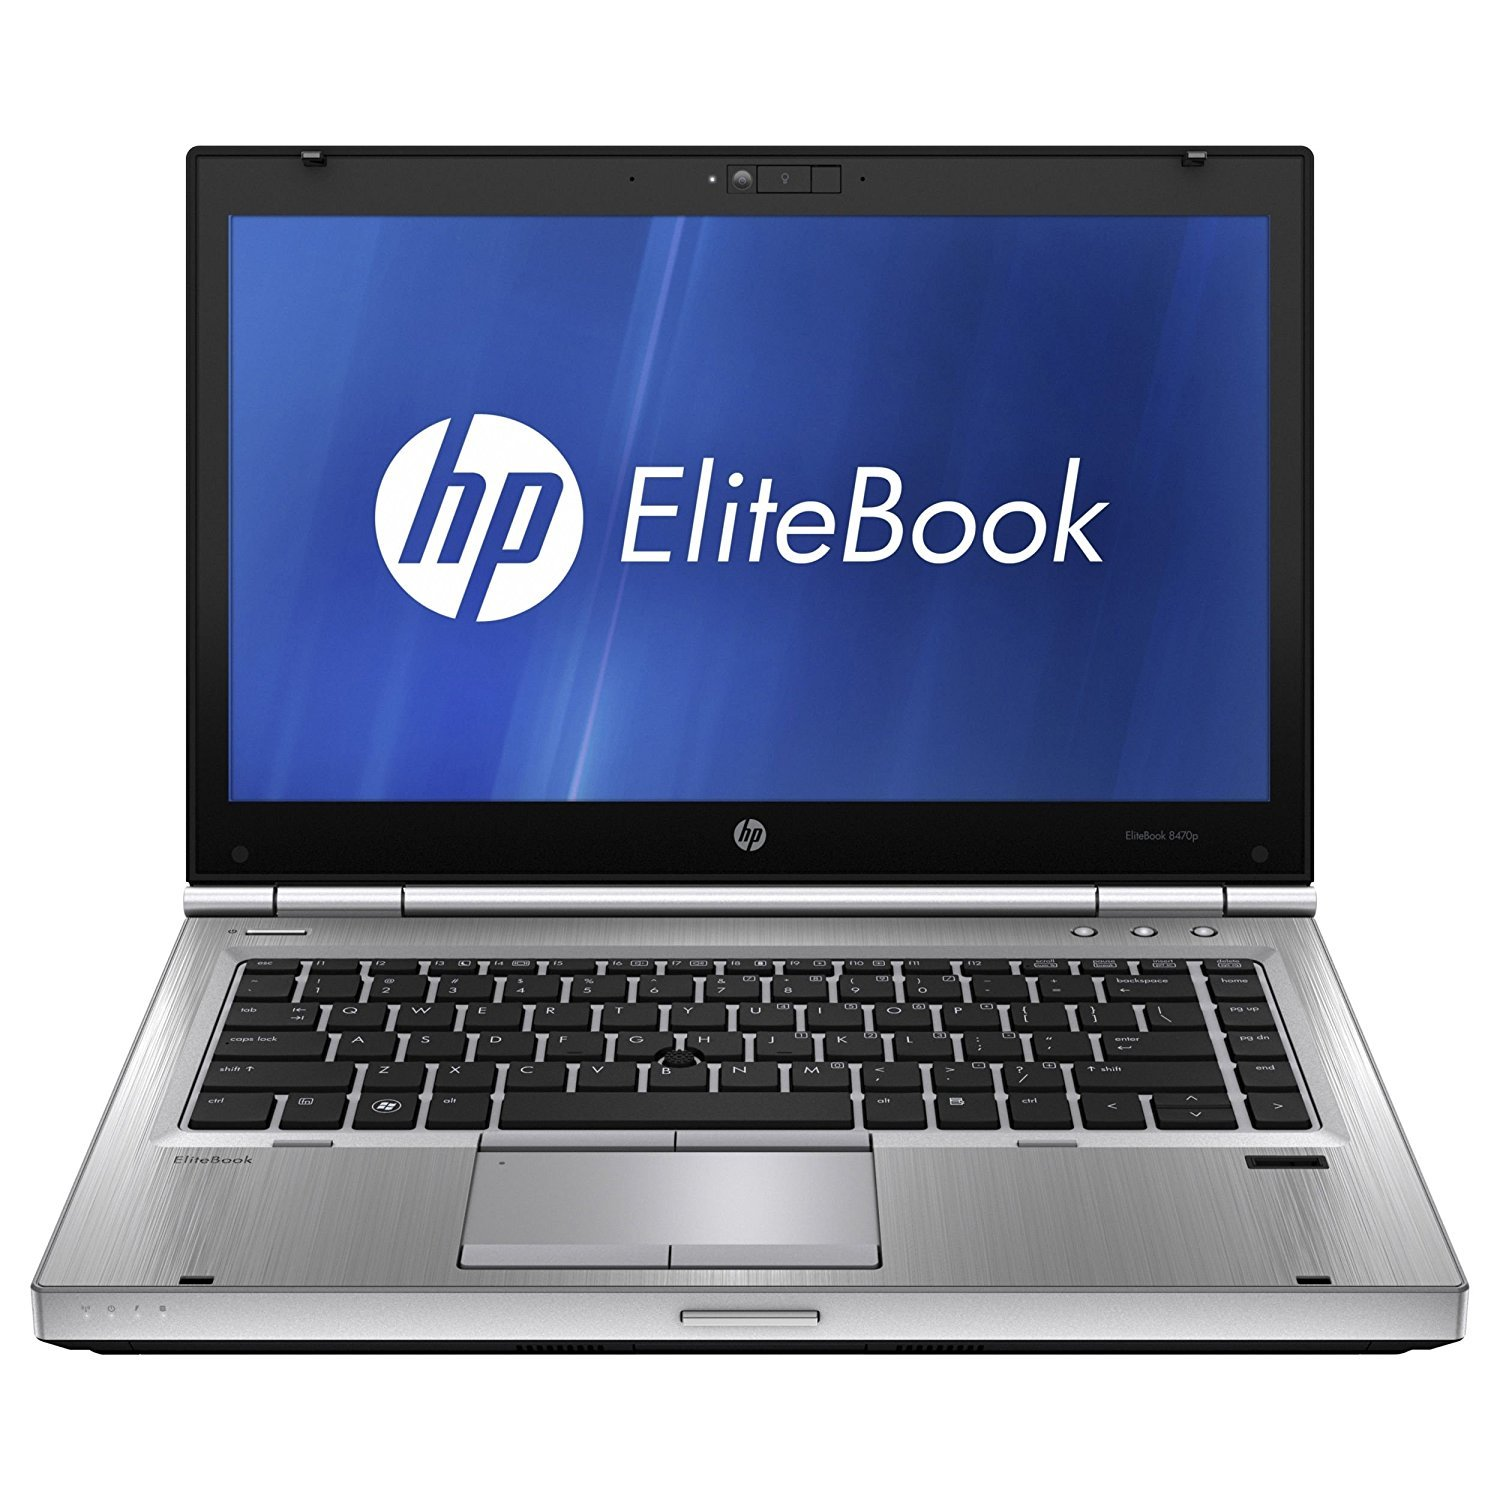 HP Elitebook 8470p Laptop WEBCAM - Core i5 2.6ghz - 8GB DDR3 - 500GB HDD - DVD - Windows 10 home - (Certified Refurbished)